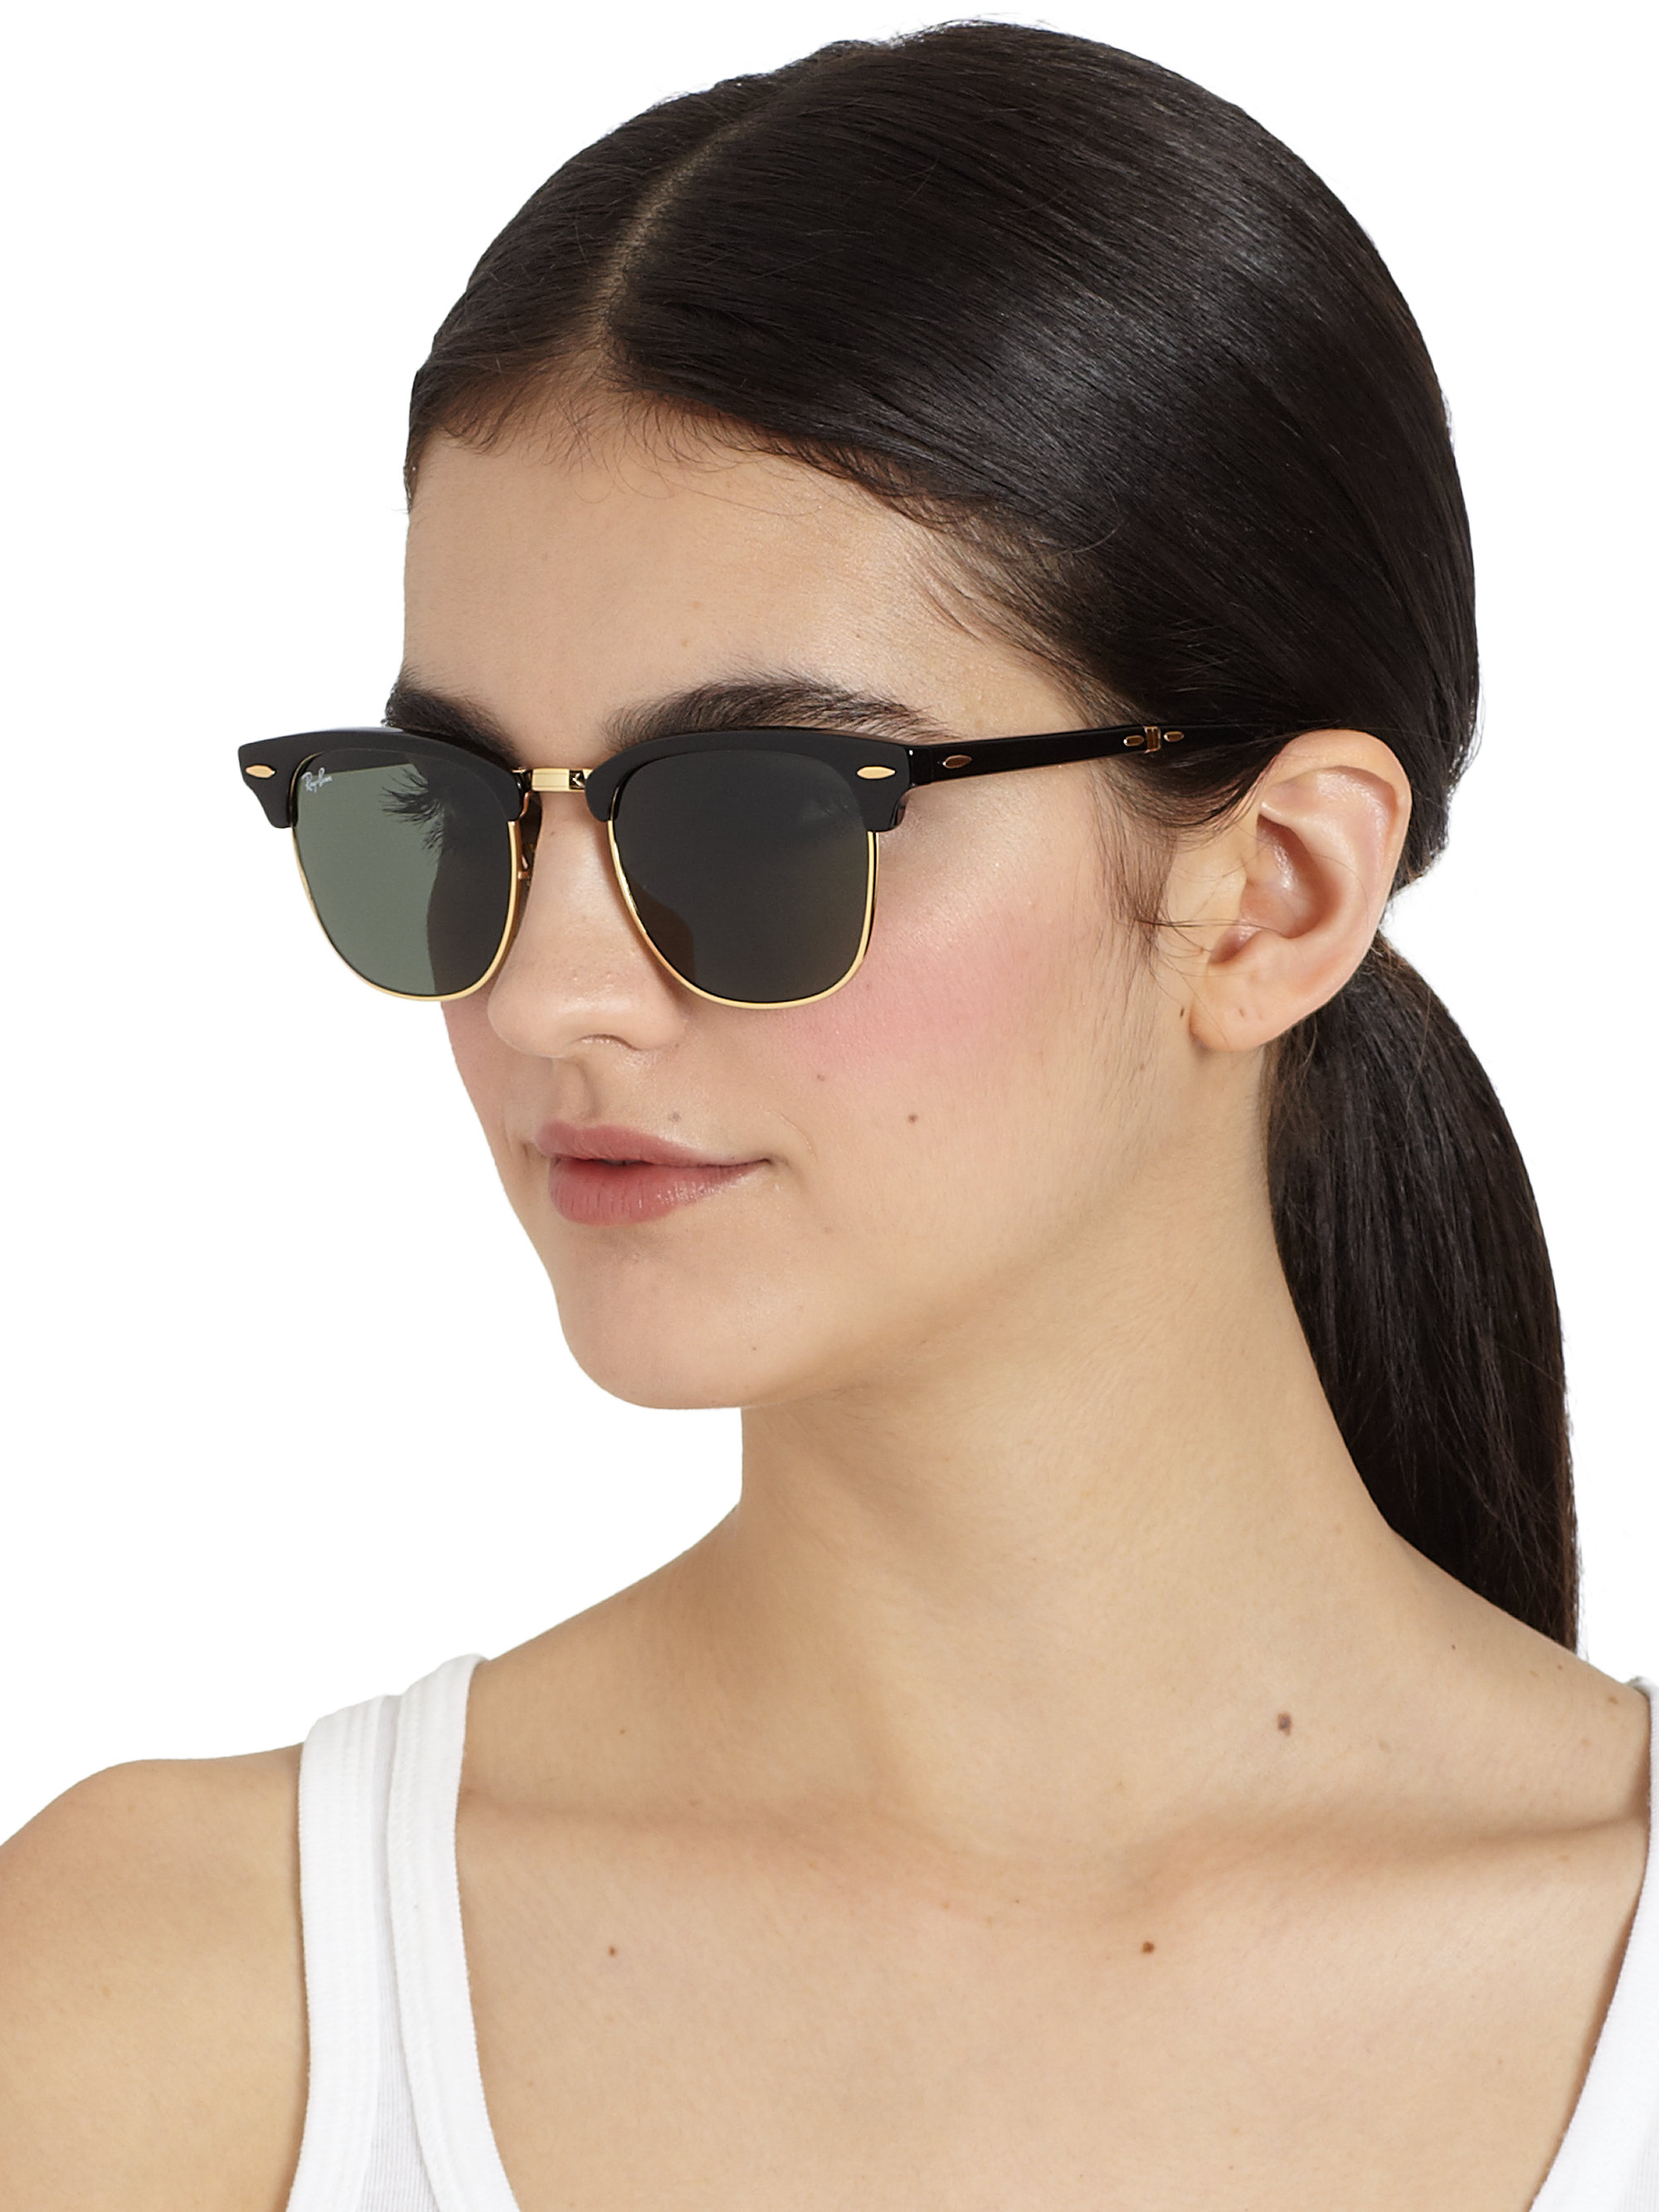 Lyst - Ray-Ban Folding Clubmaster Sunglasses in Black